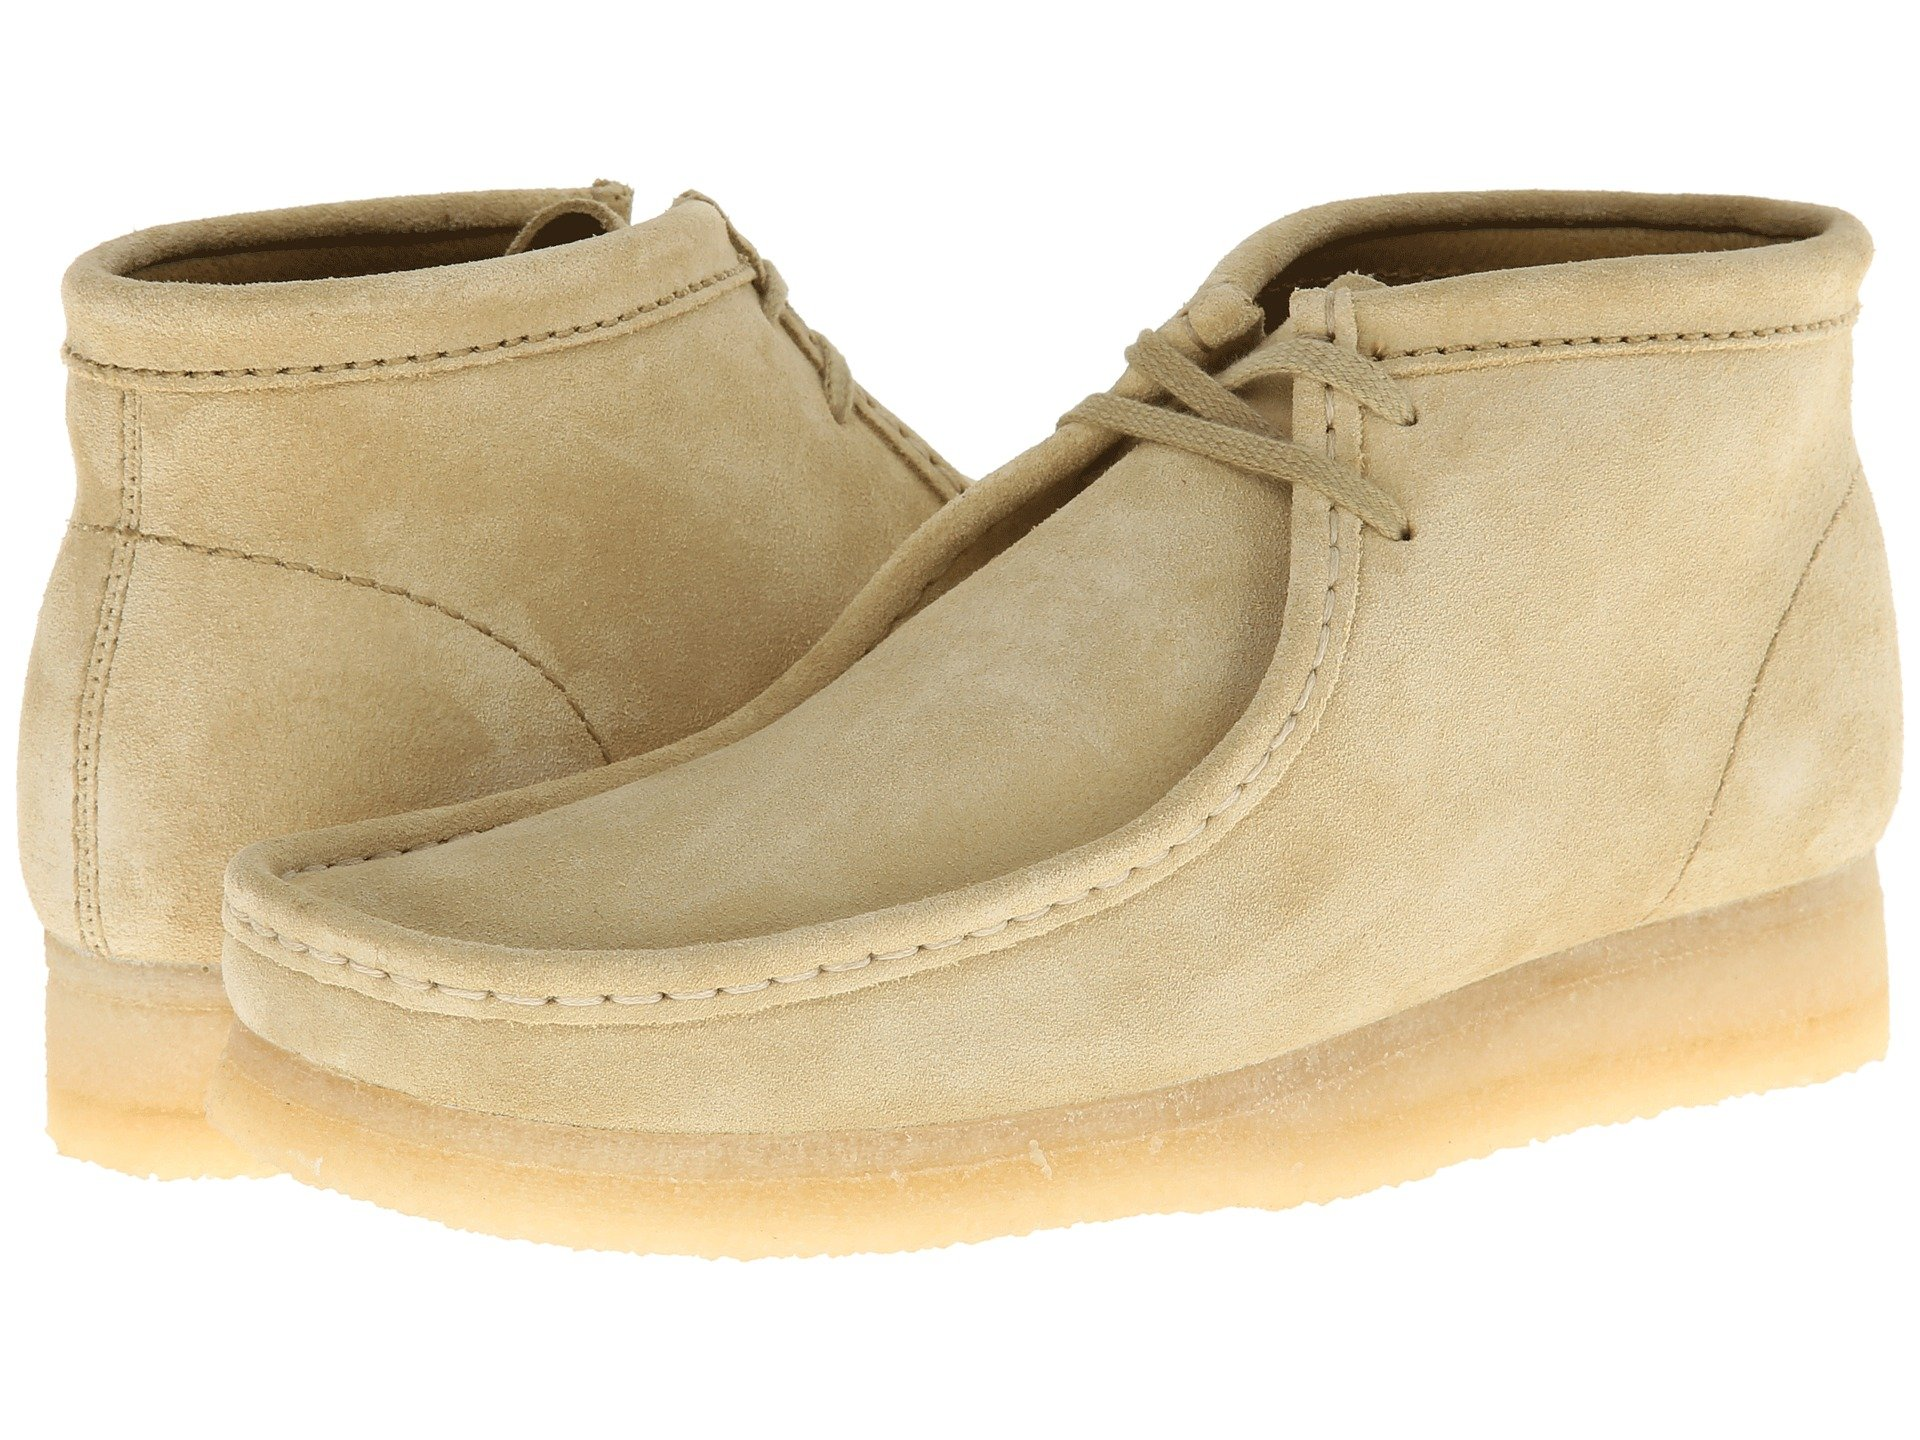 Clarks Shoes Reviews